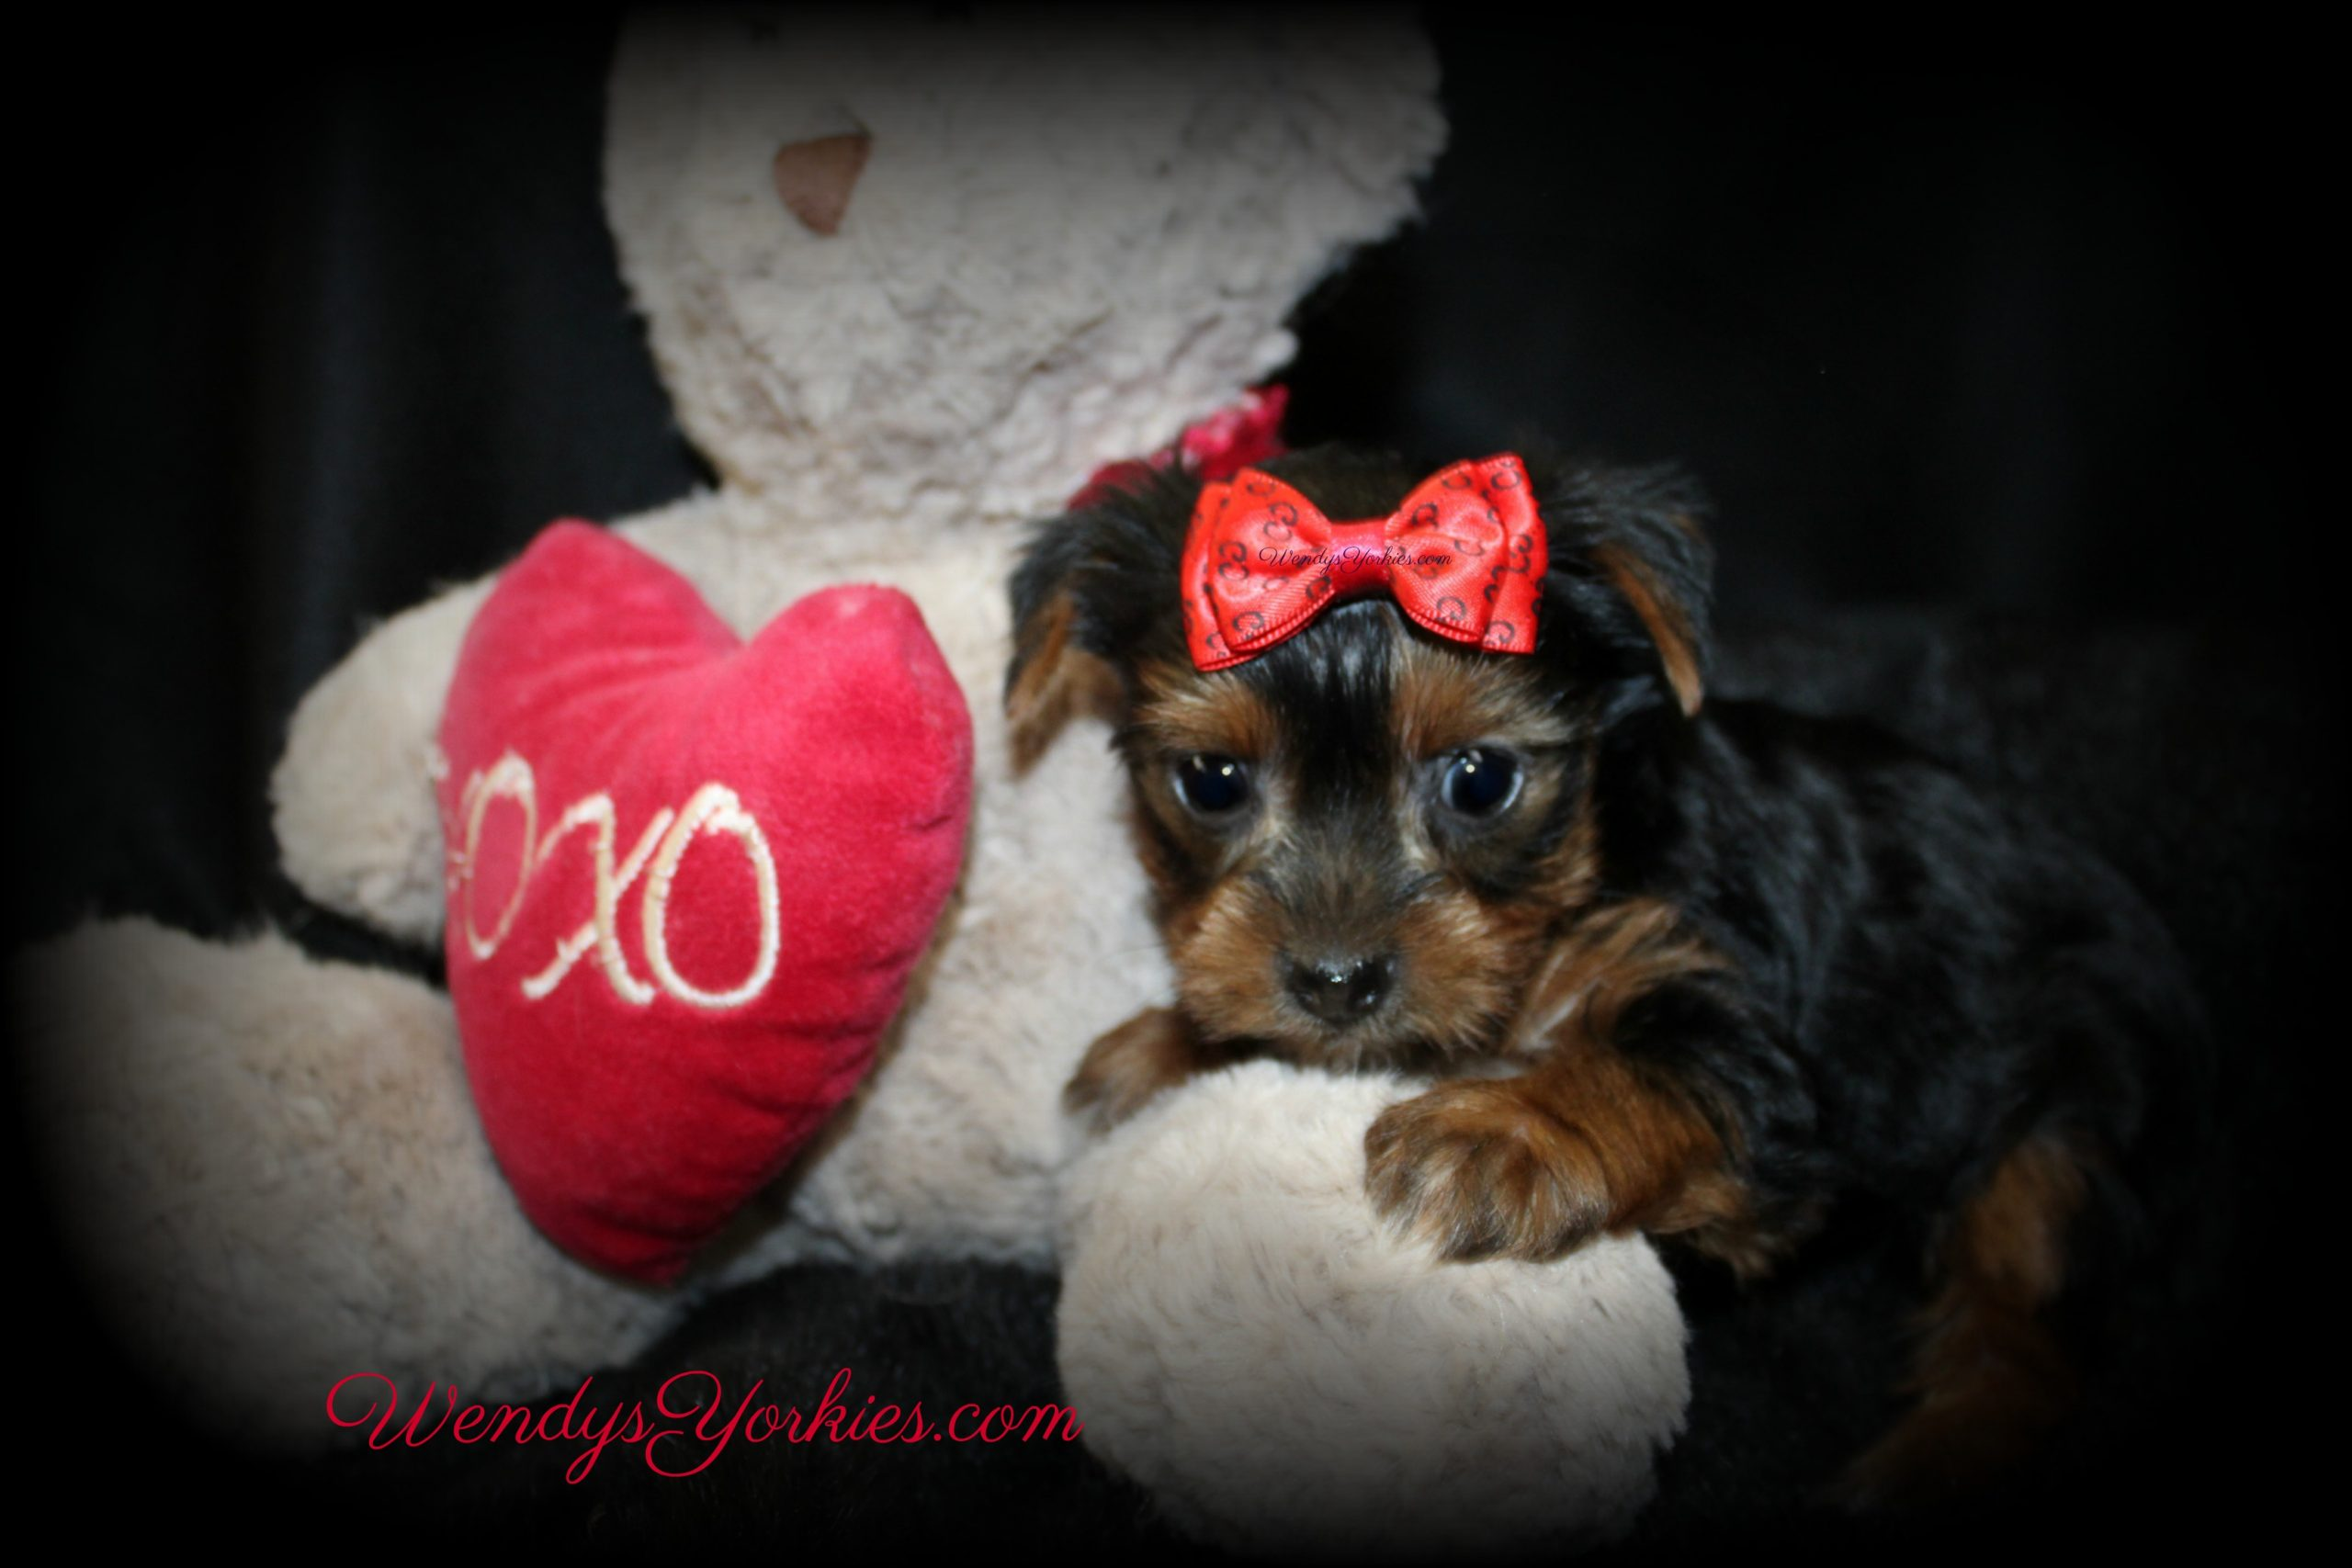 Cute Male Yorkie puppy for sale in Texas, WendysYorkies.com